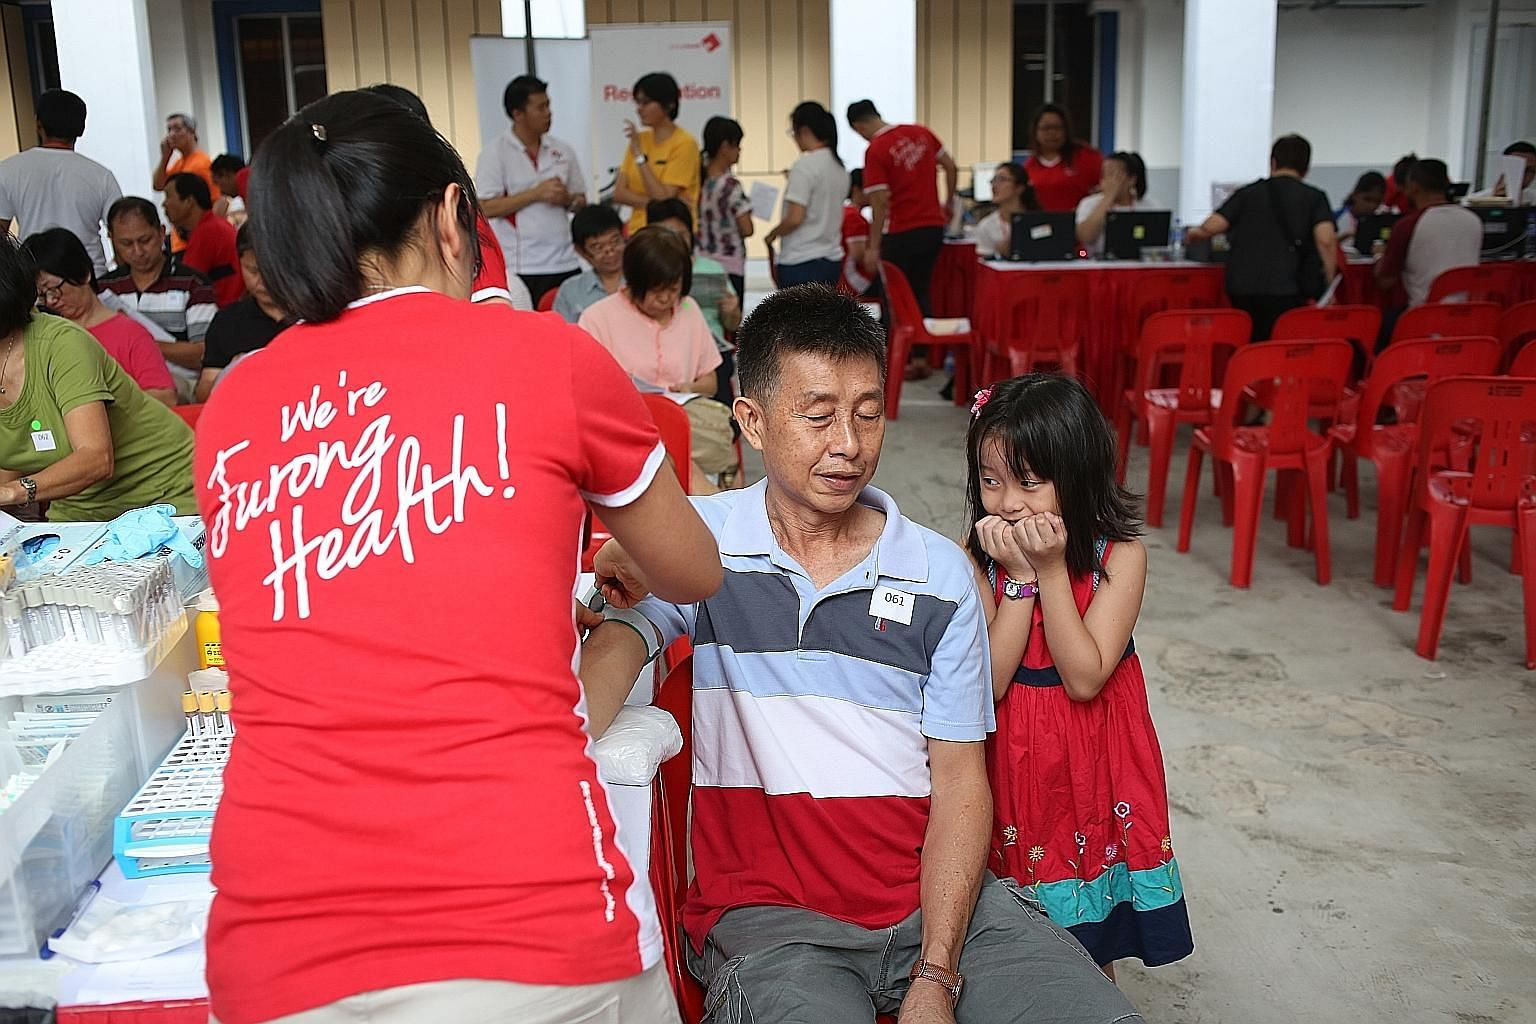 Chia Yi Leng, eight, trying to put on a brave front while her father, Mr Chia Kwong Weng, 56, prepared to have his blood drawn for a test yesterday. He was among those given free health screenings under a new One and Health Programme that saw some 30